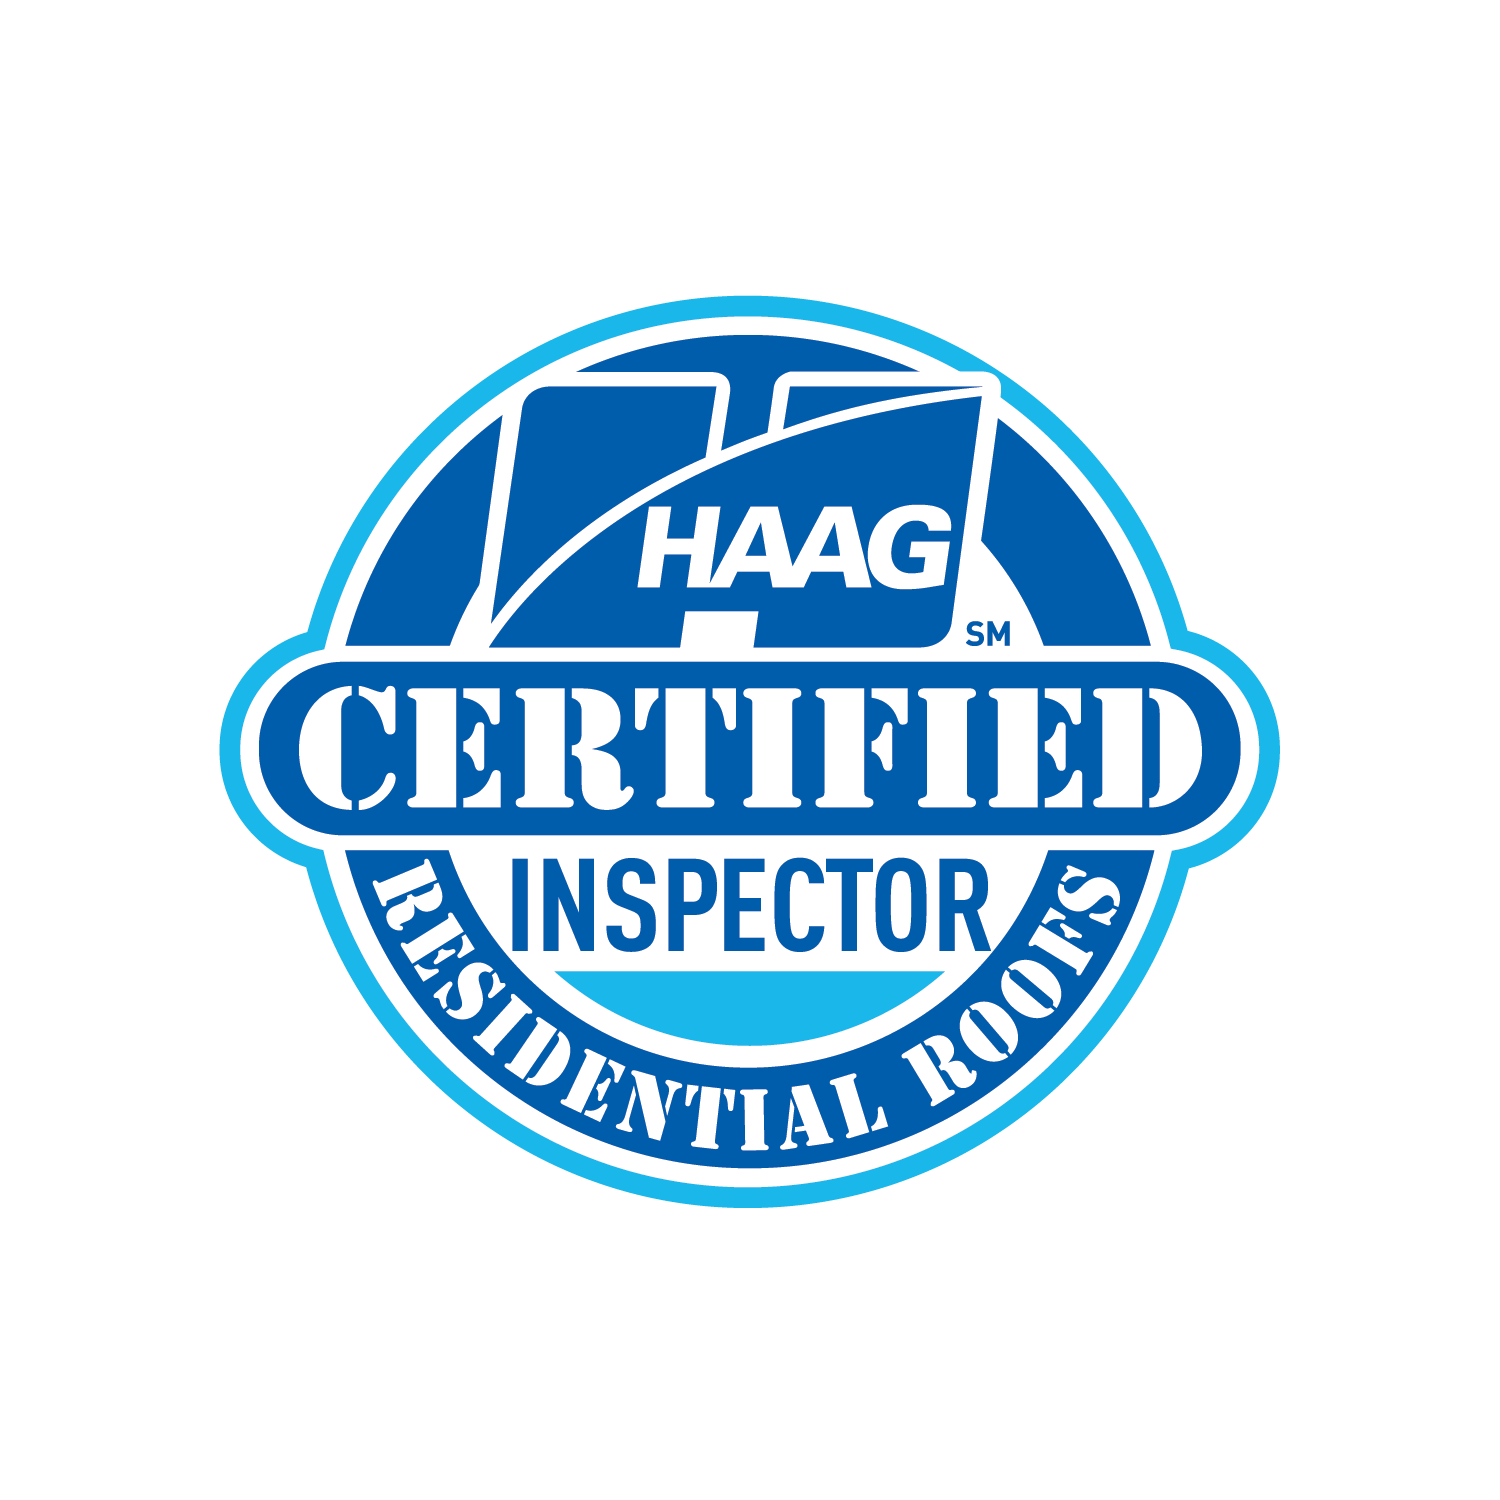 Only Two Percent Of Roofing Contractors Become Haag Certified